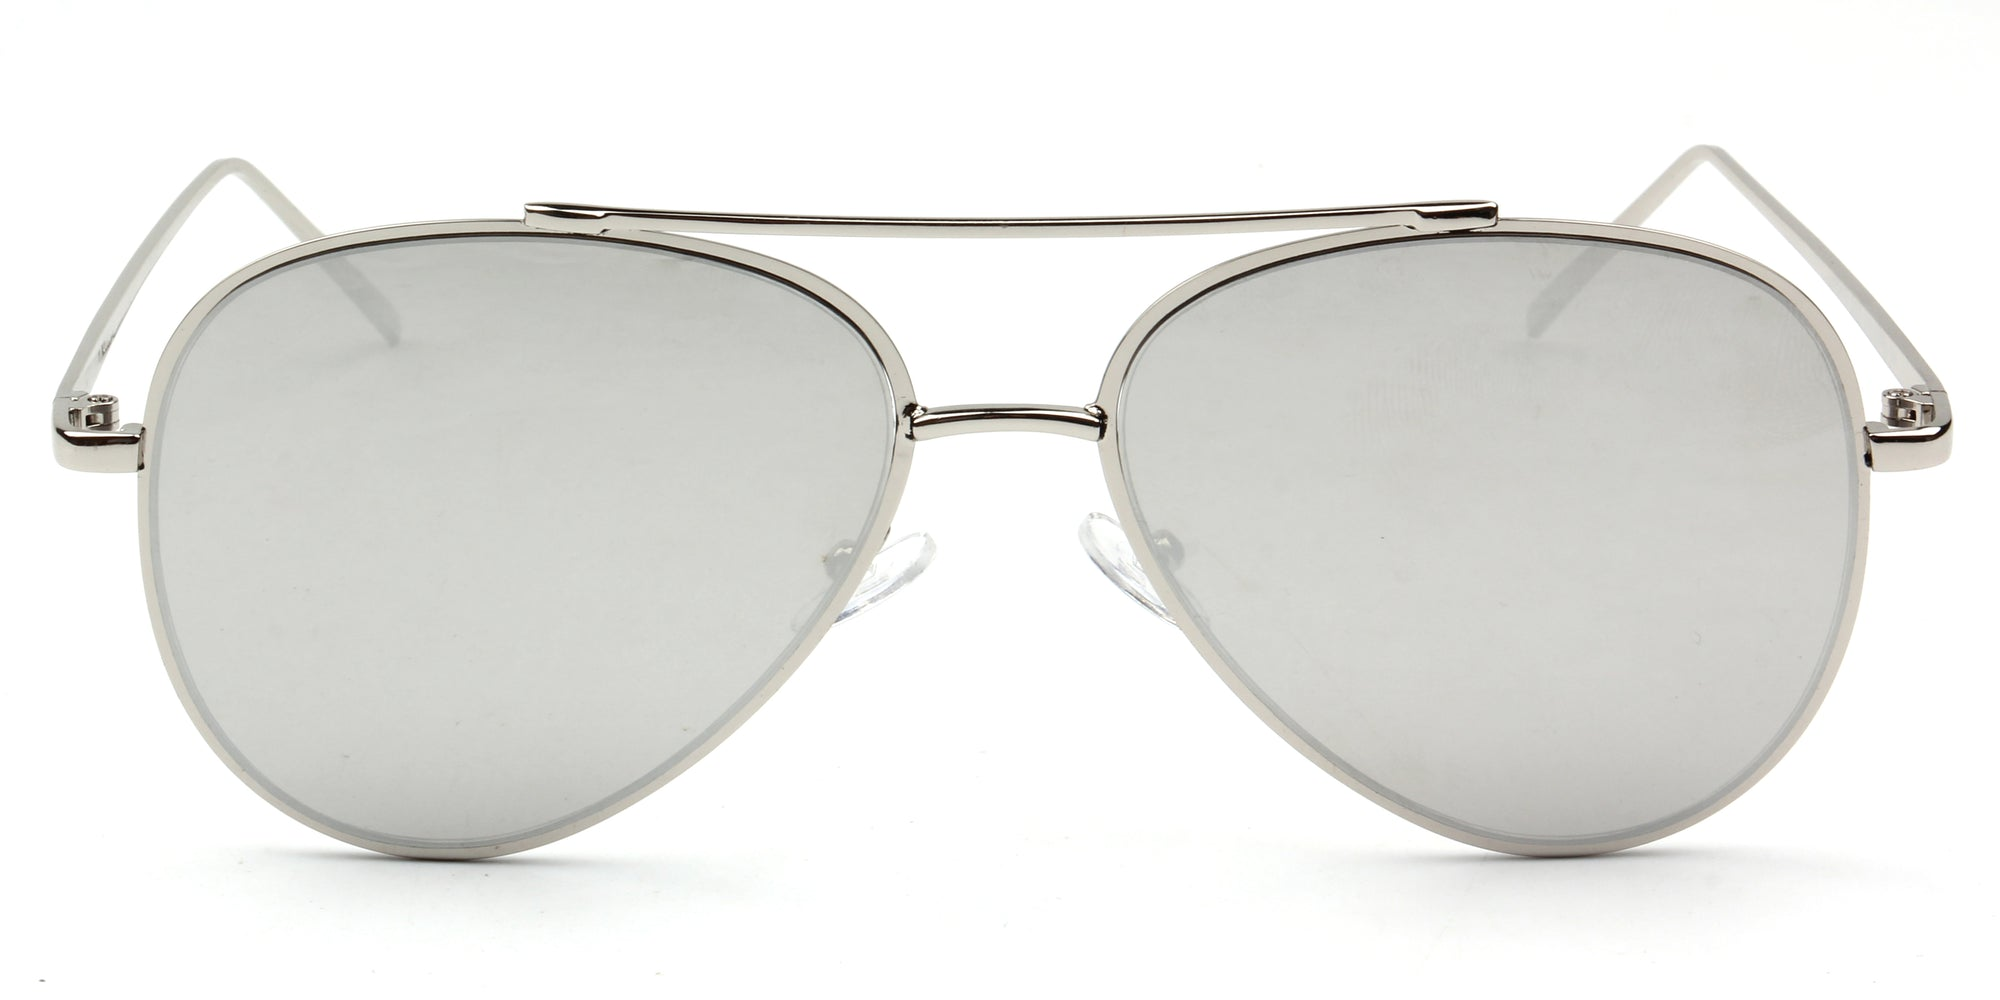 S2013  - Classic Aviator Mirrored Sunglasses - Wholesale Sunglasses and glasses